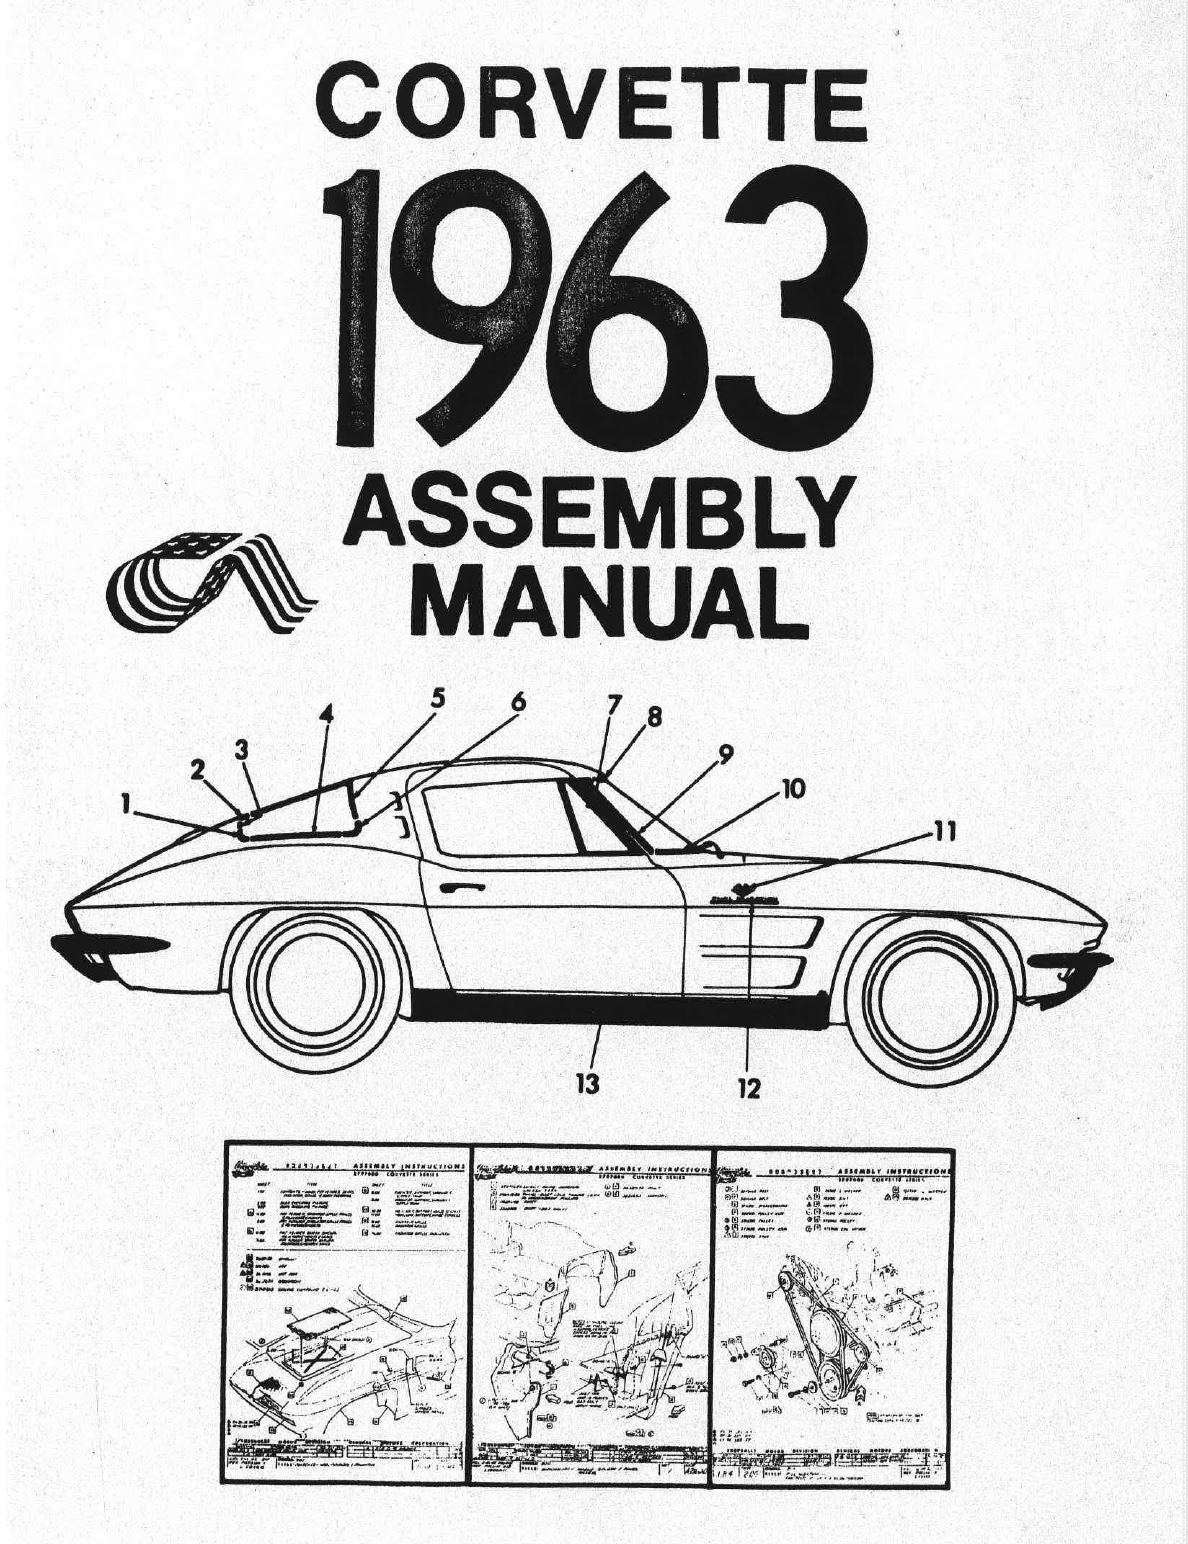 Chevrolet Corvette 1963 Workshop Manual PDF